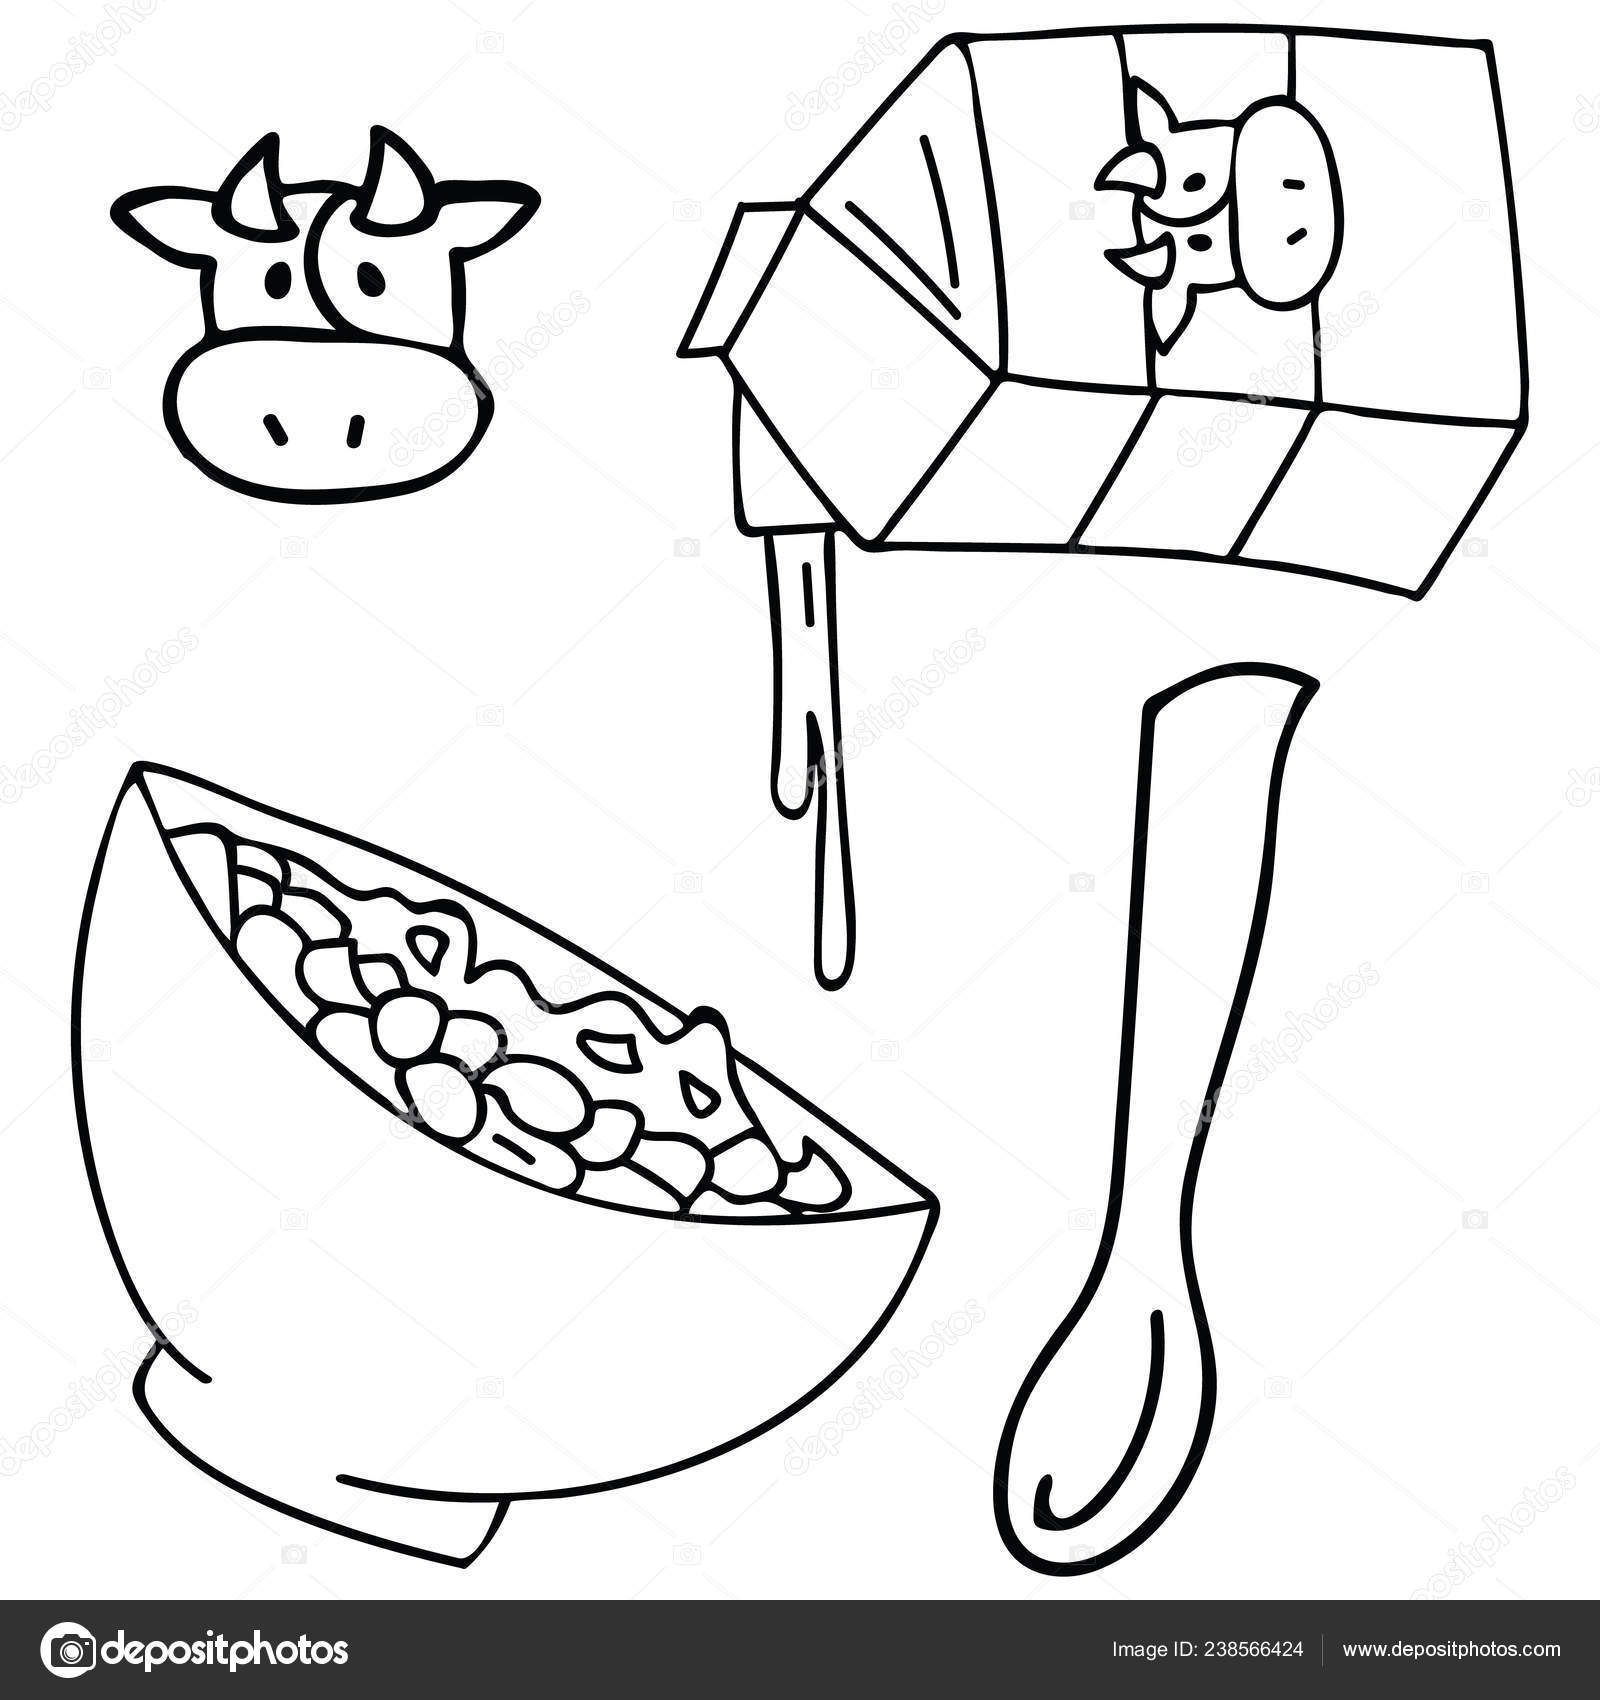 Clipart: kitchen black and white   Cute Breakfast Cereal